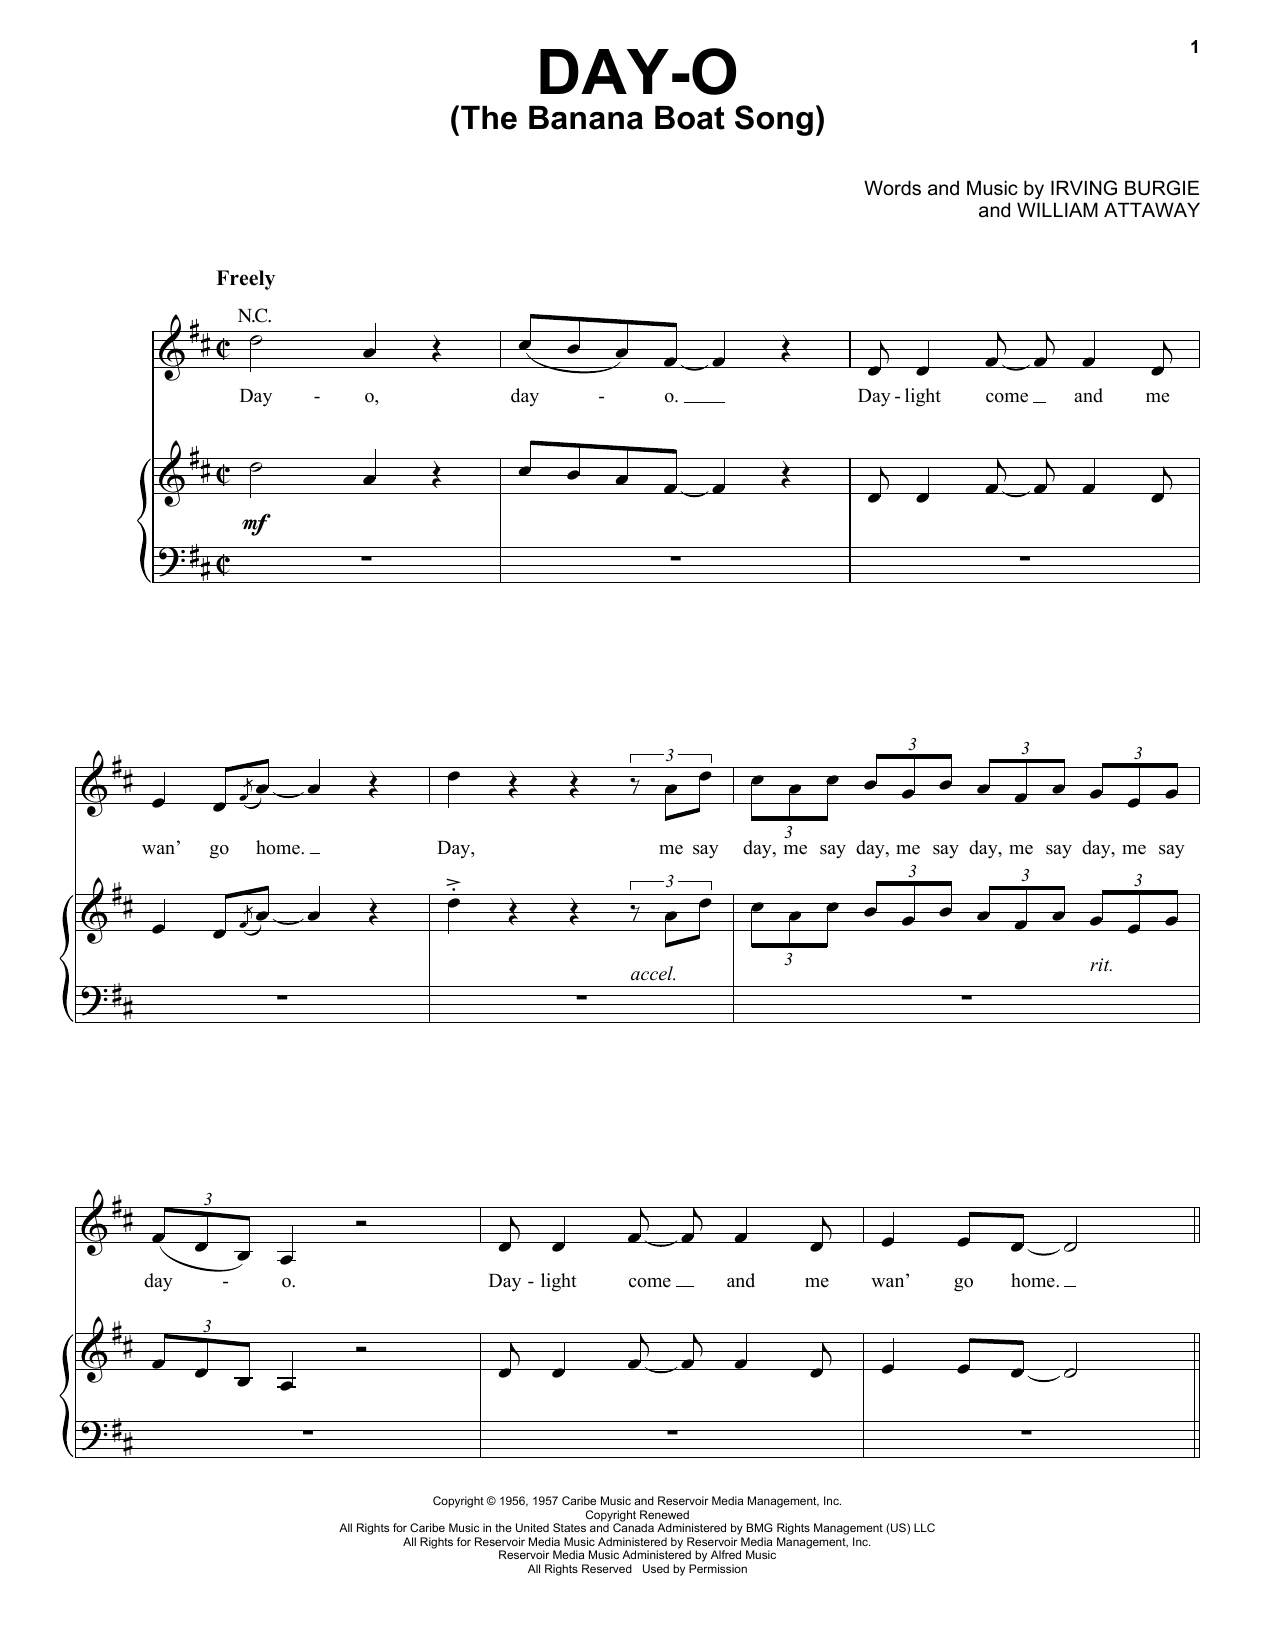 Day o the banana boat song sheet music direct sheet preview hexwebz Image collections